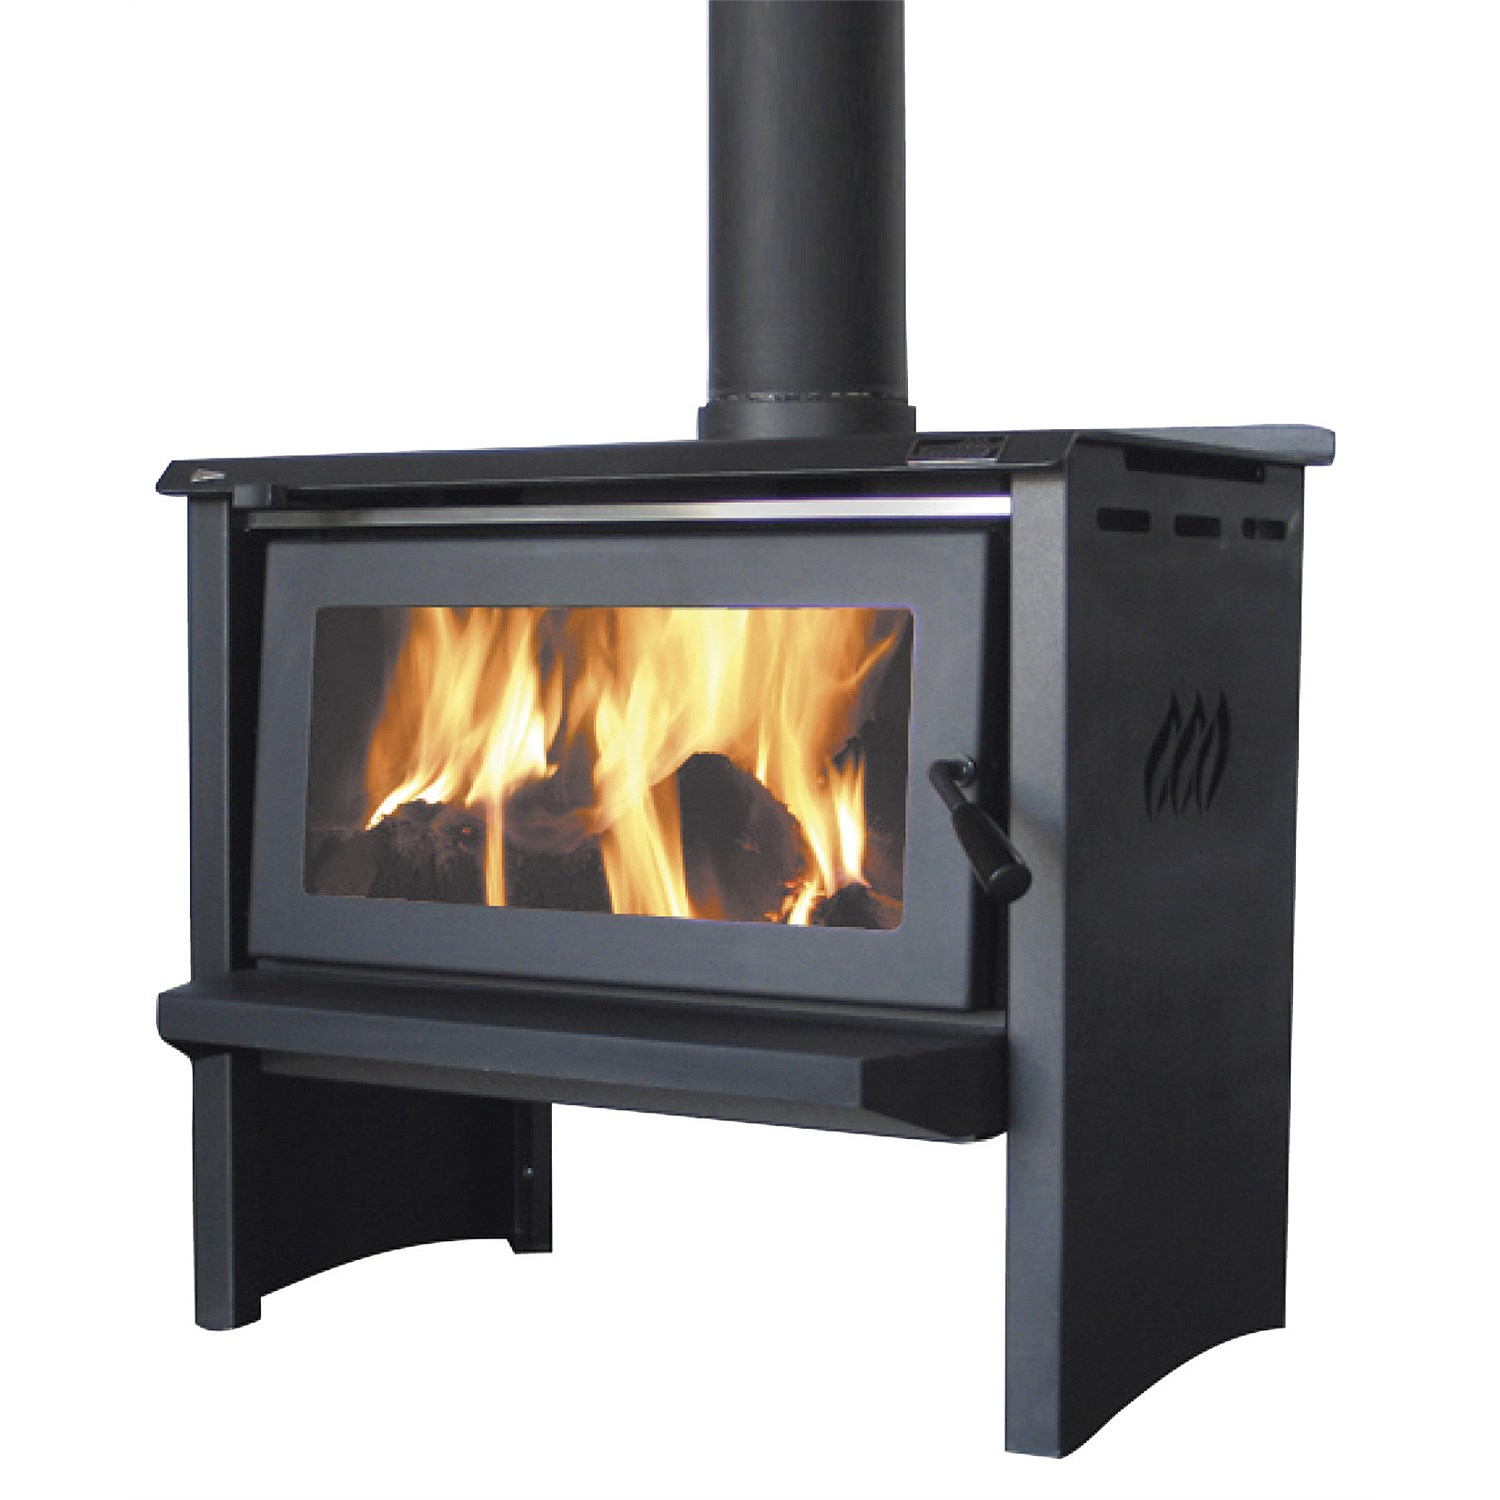 Heating Products Jayline Ss200l Free Standing Wood Fire Plumbing World